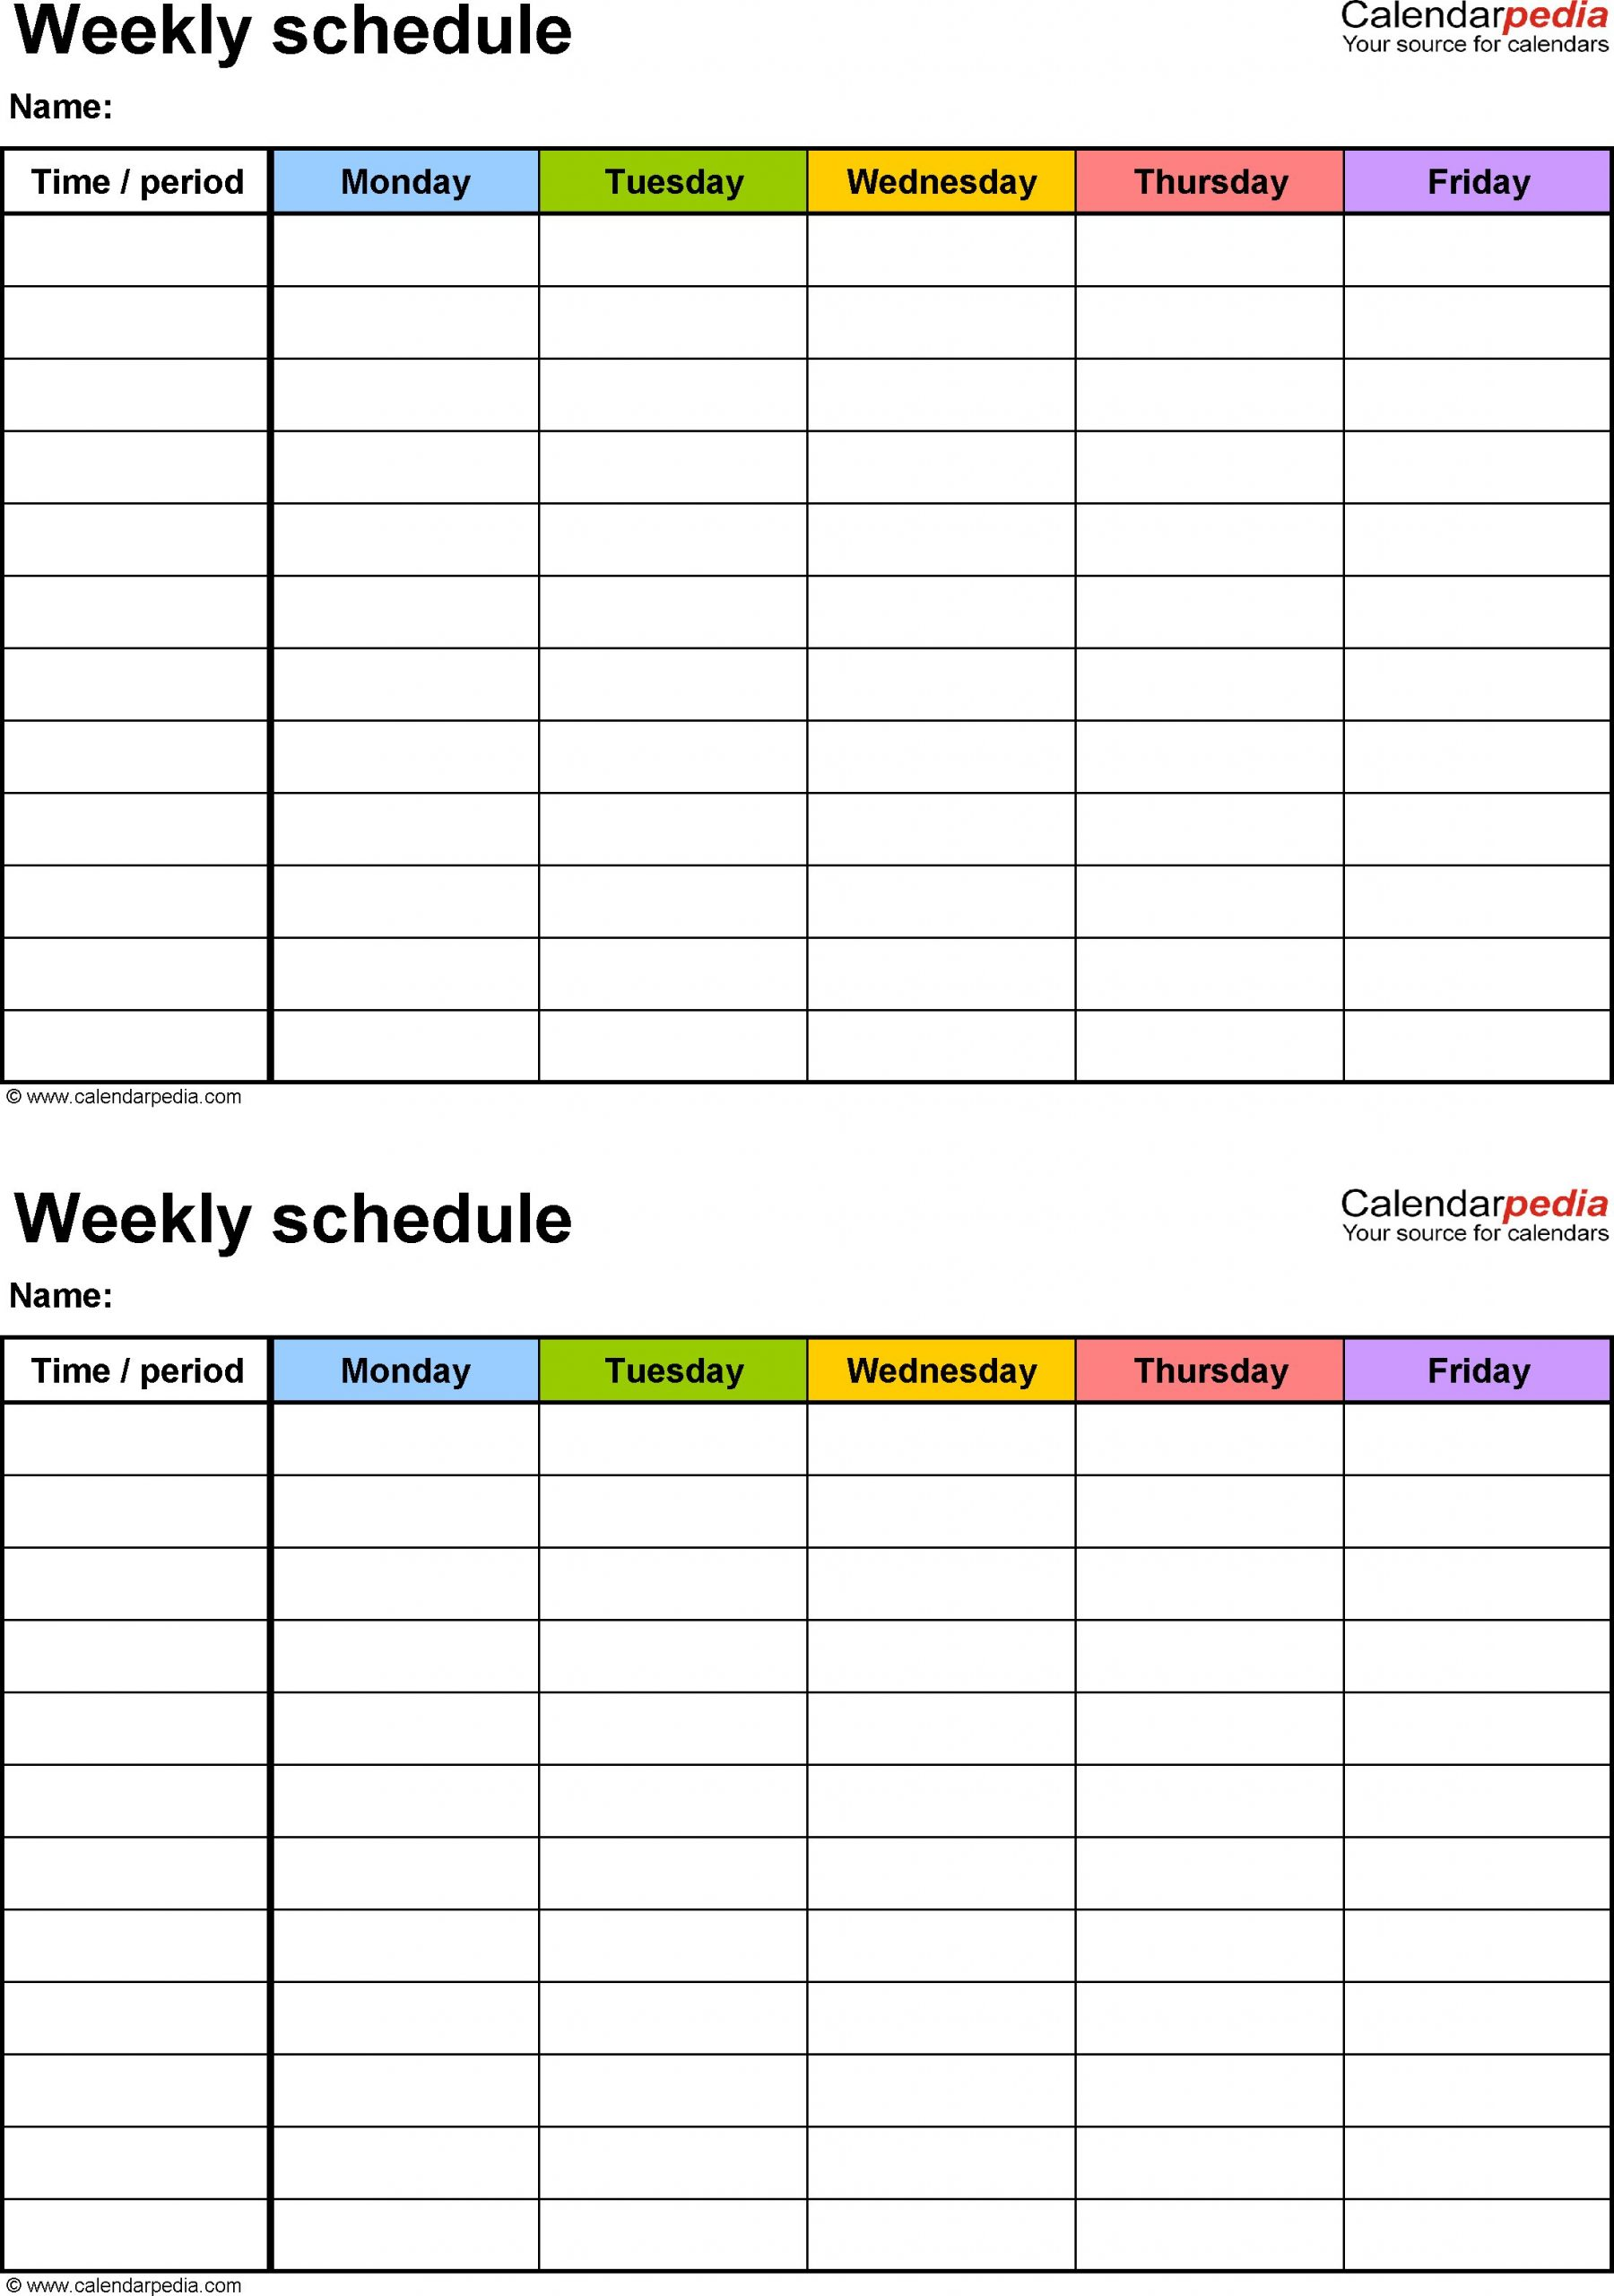 Weekly Schedule Template Pdf – Task List Templates Editable One Week Calendar